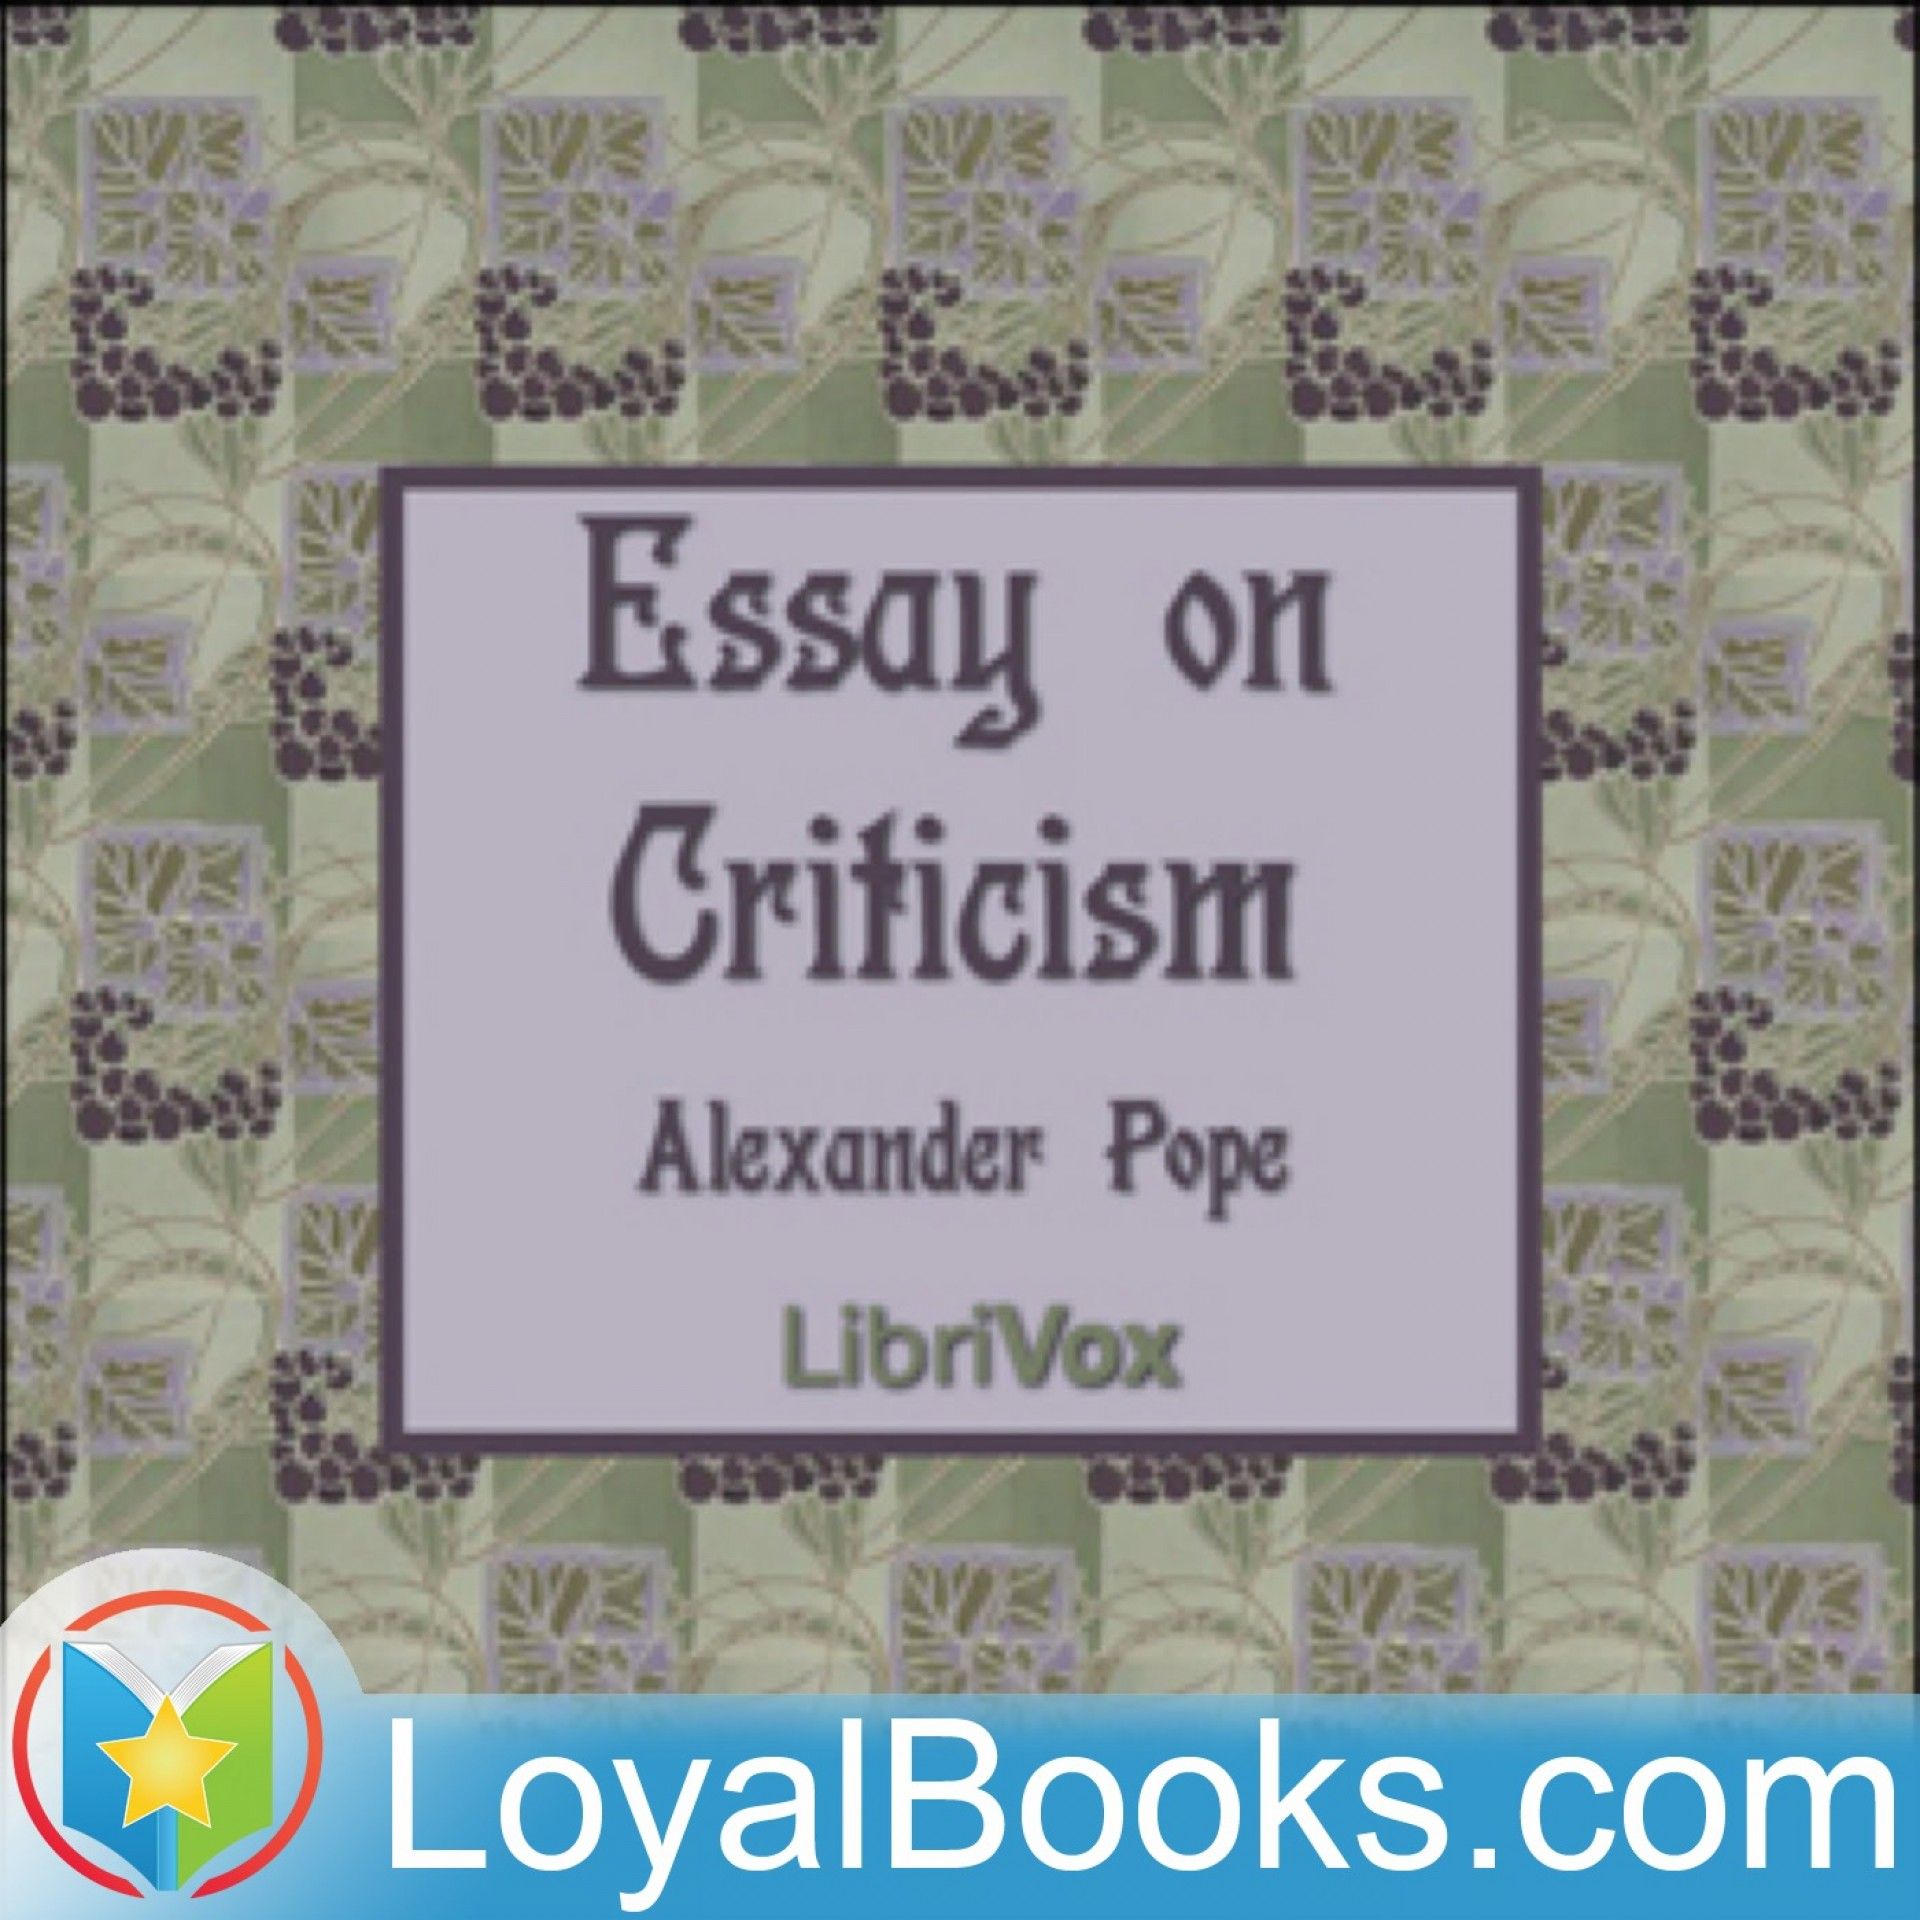 014 Essay On Criticism By Alexander Pope An Sensational Lines 233 To 415 Meaning Summary Sparknotes 1920